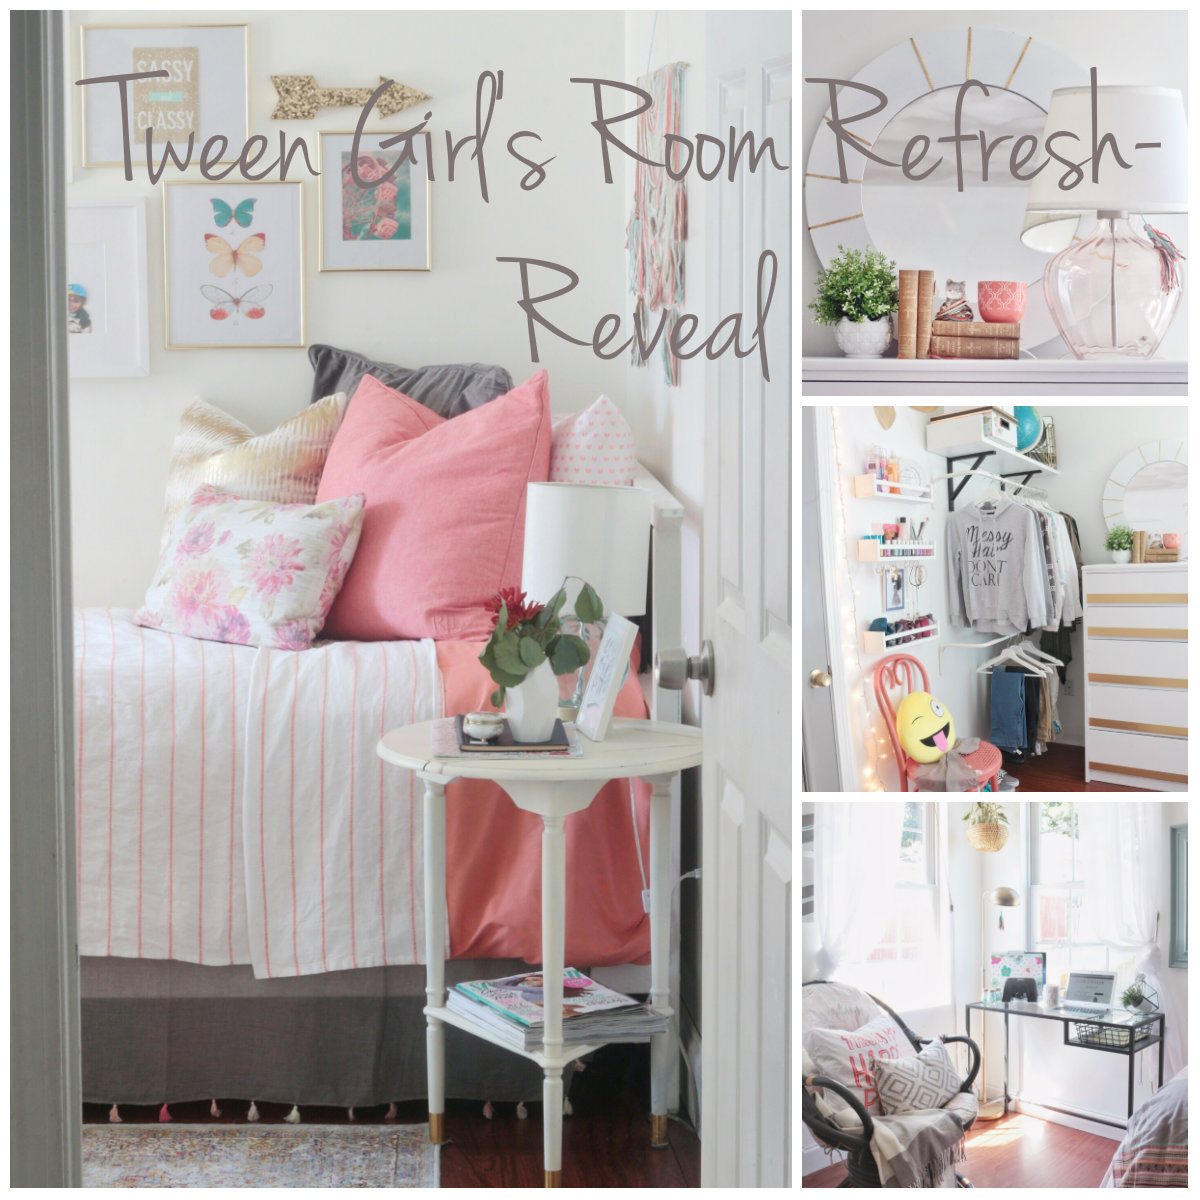 For More Teen Room Inspiration, Check Out Shutterflyu0027s Round Up Here: 75  Rad Teen Room Ideas